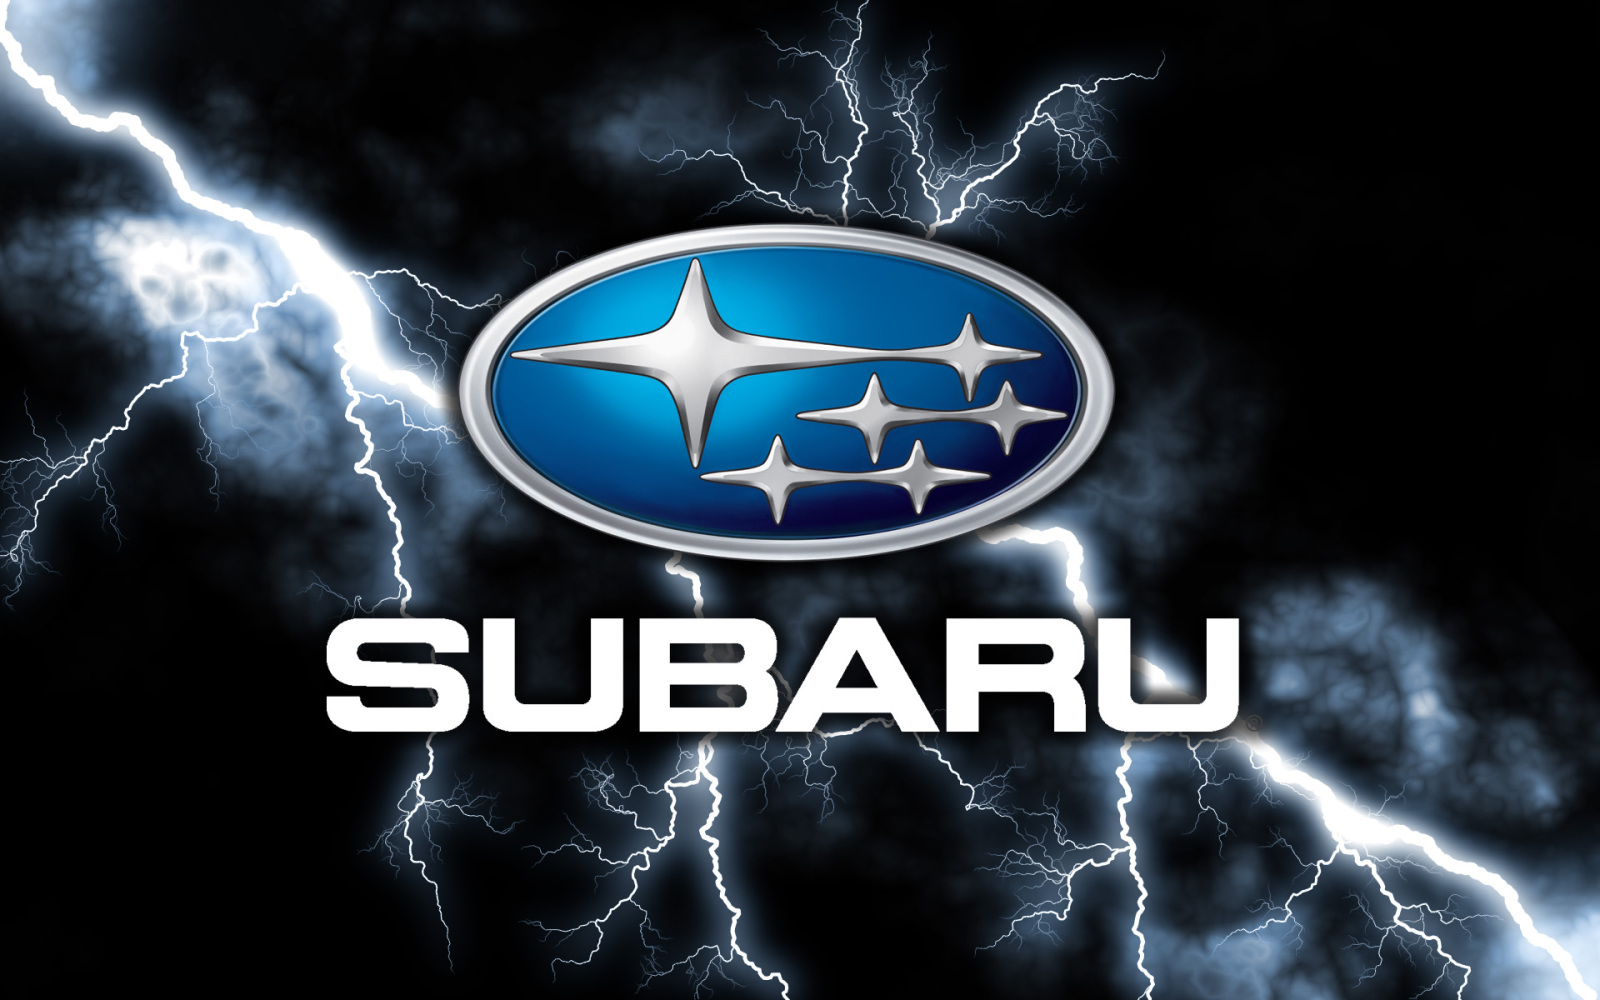 Subaru Logo Subaru Car Symbol Meaning And History Car Brand Names